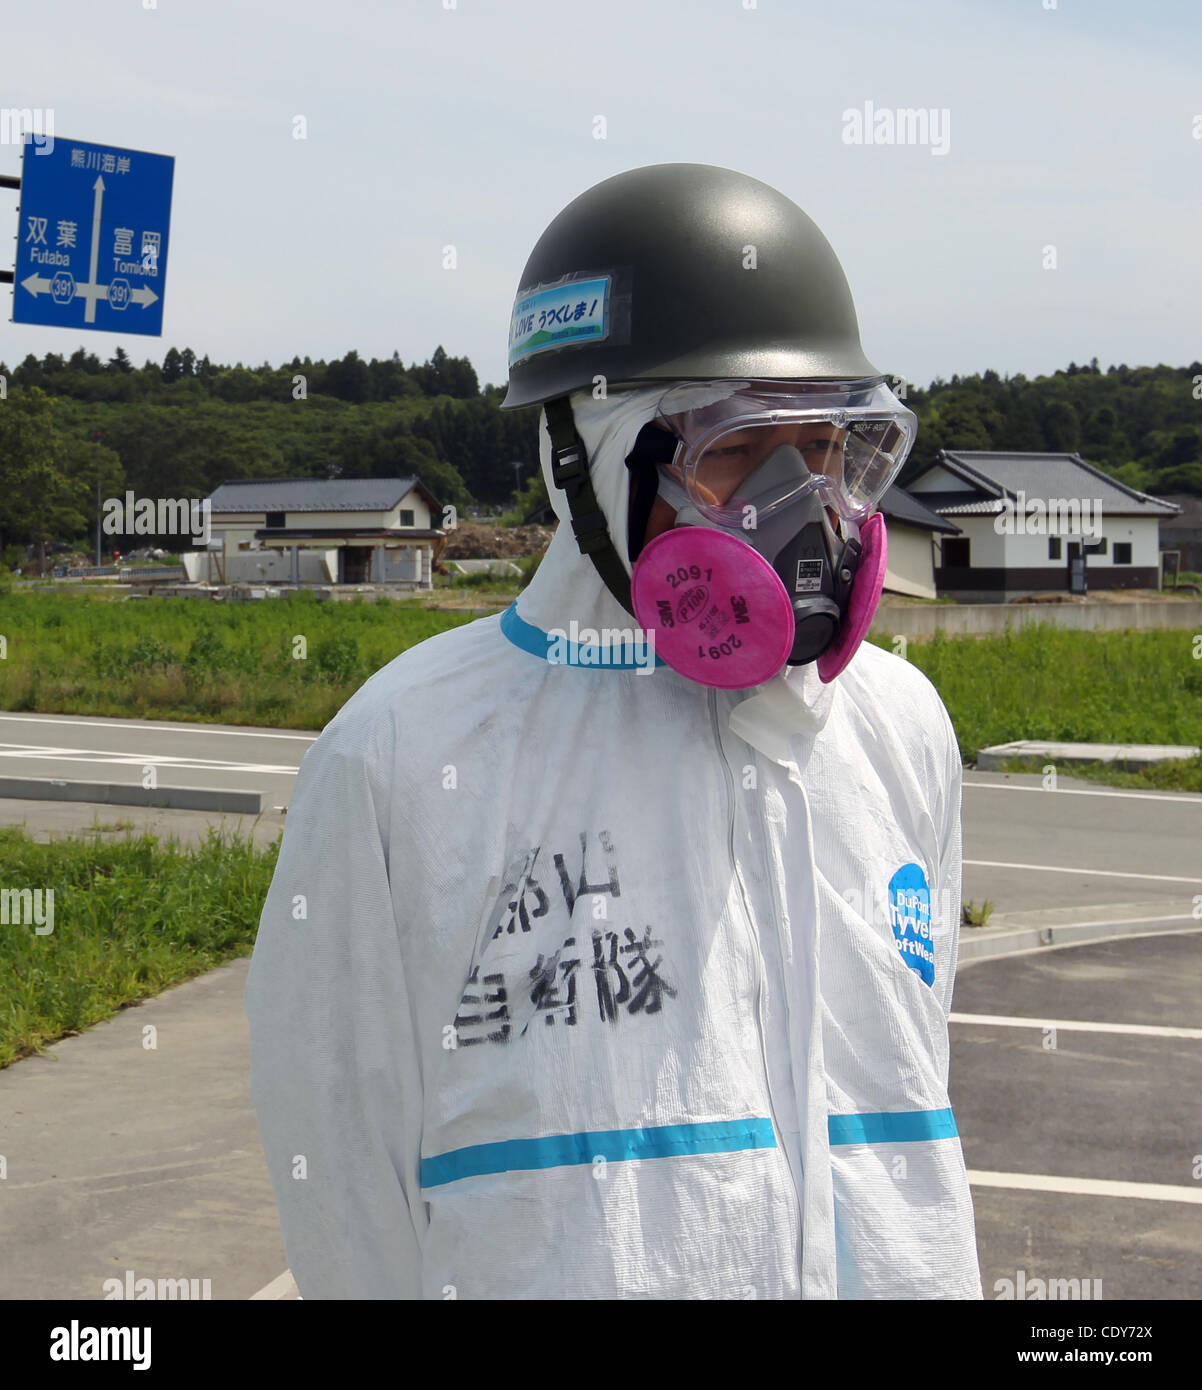 July 24, 2011 - Okuma, Japan - Members of Japanese self-defence forces wearing protective gear during a memorial - Stock Image